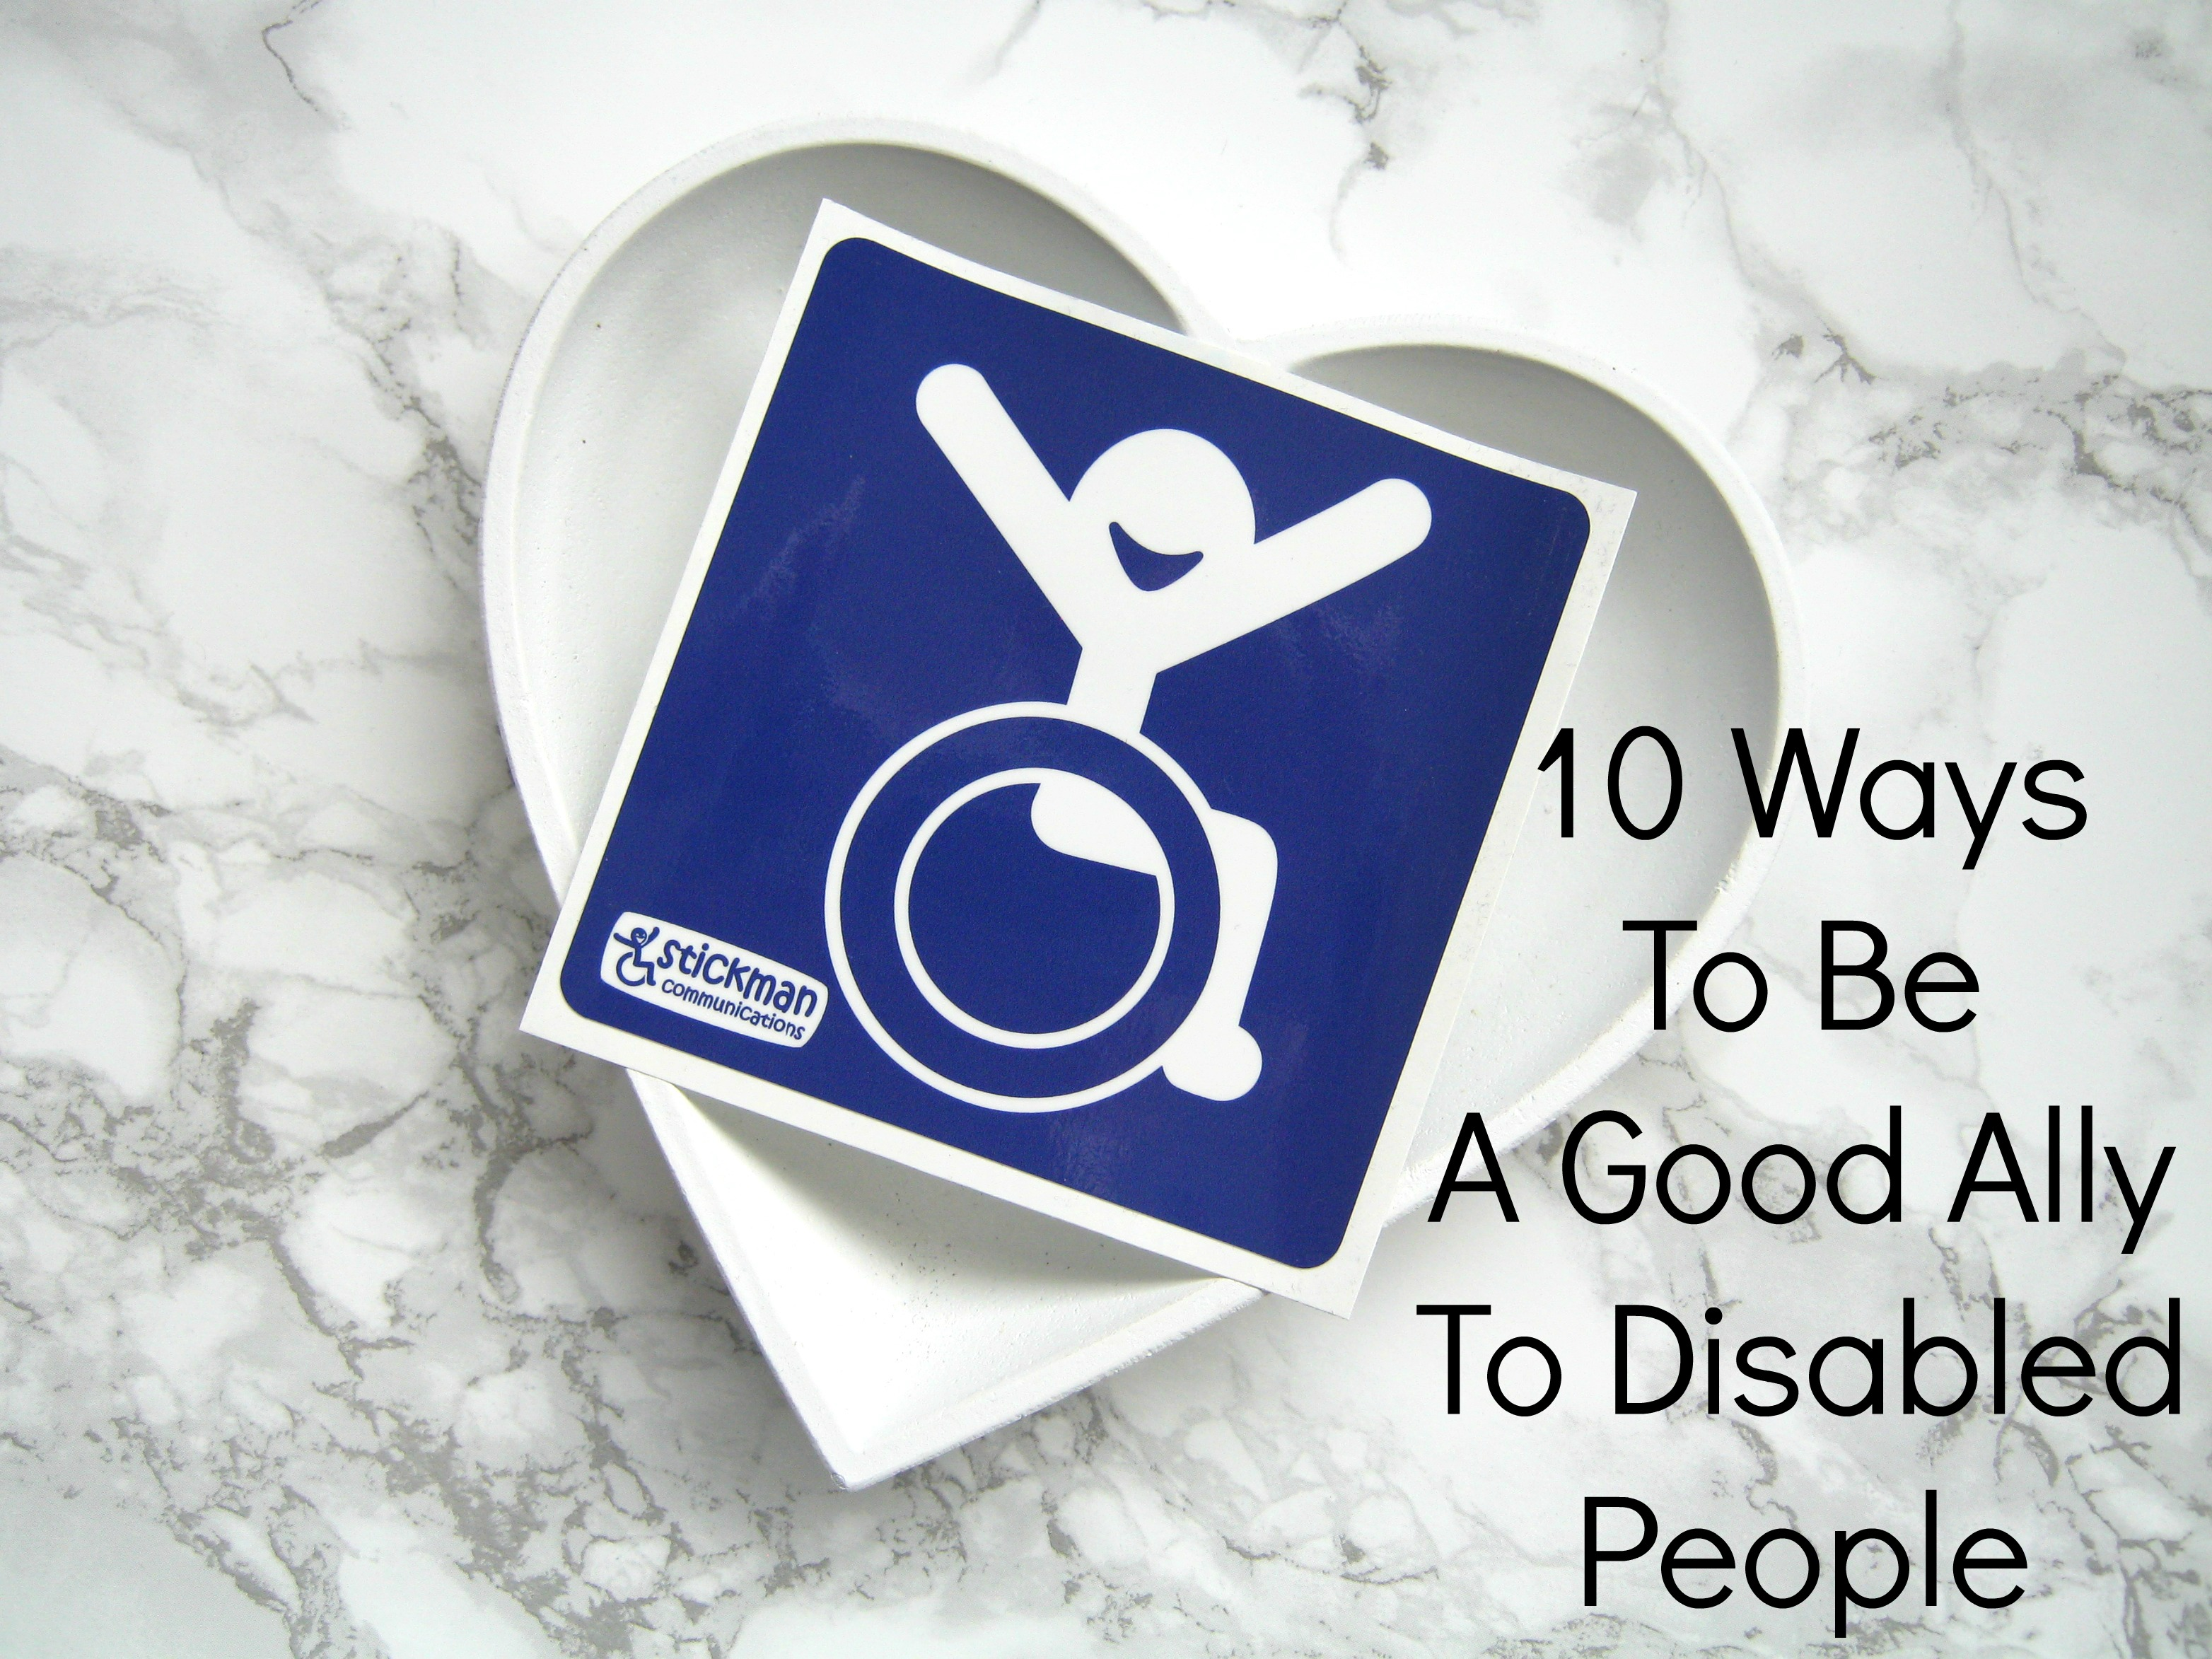 10 Ways To Be A Good Ally To Disabled People